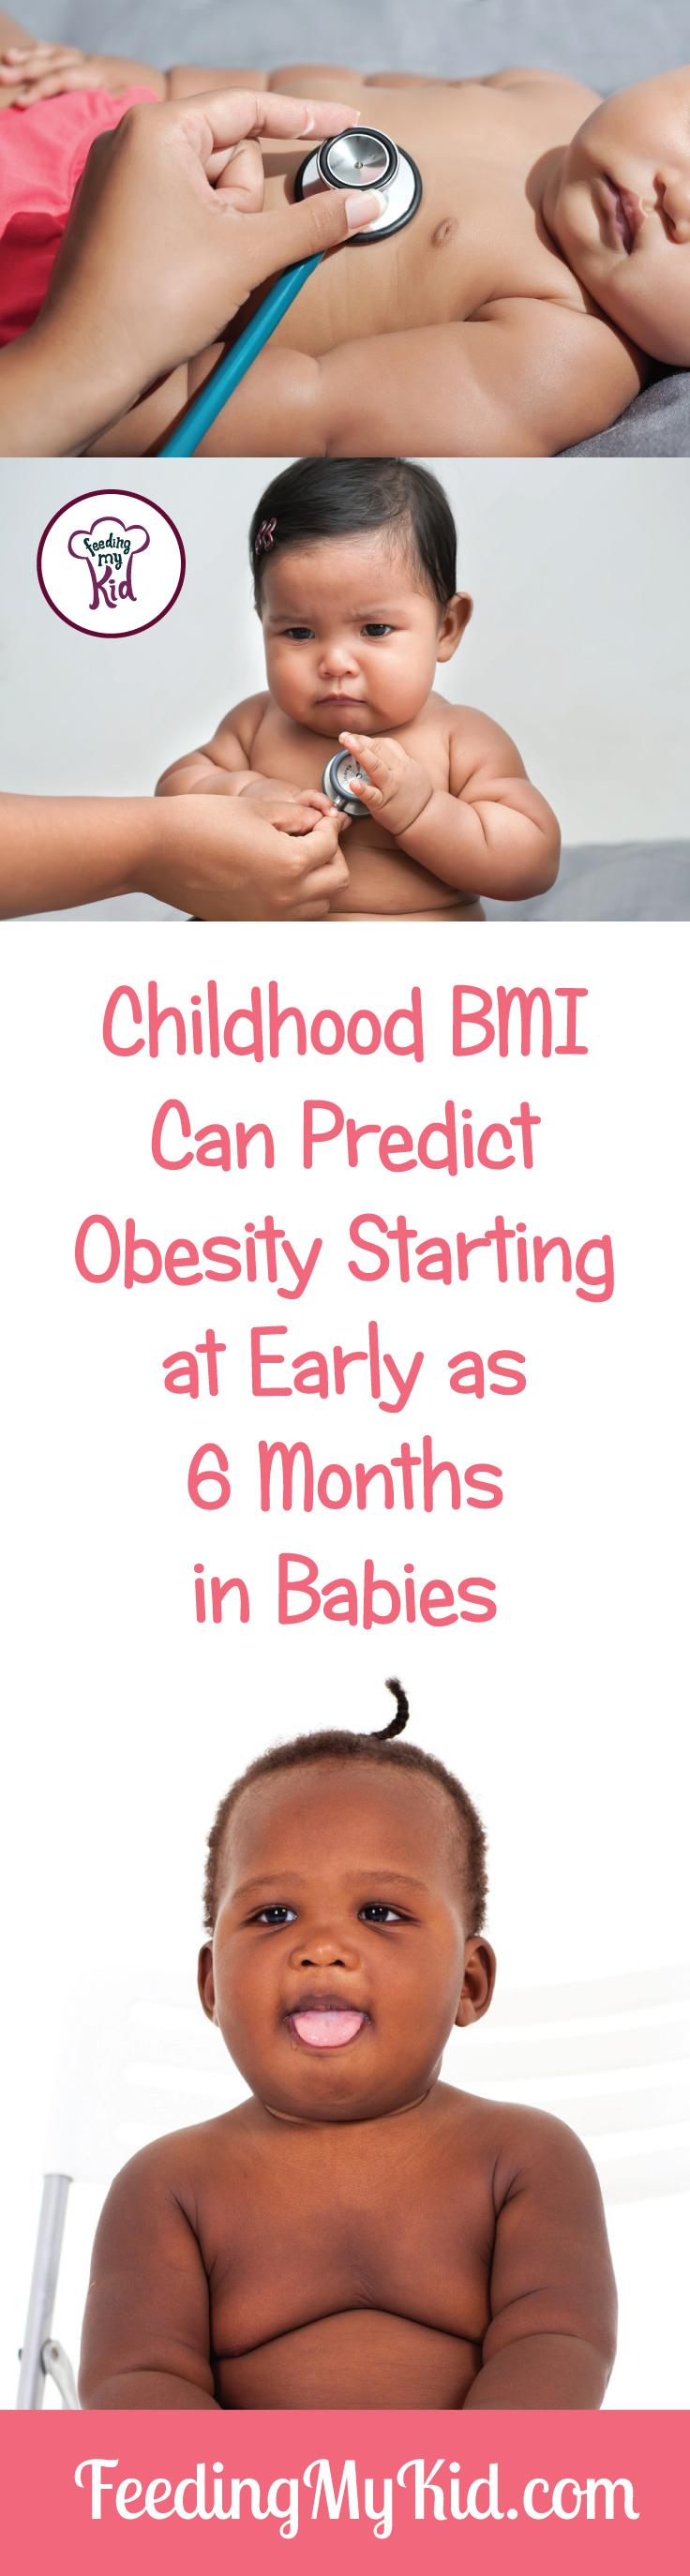 Are you worried about an overweight baby? Studies show 85% BMI weight or higher in babies can predict obesity as early as 6 months old.